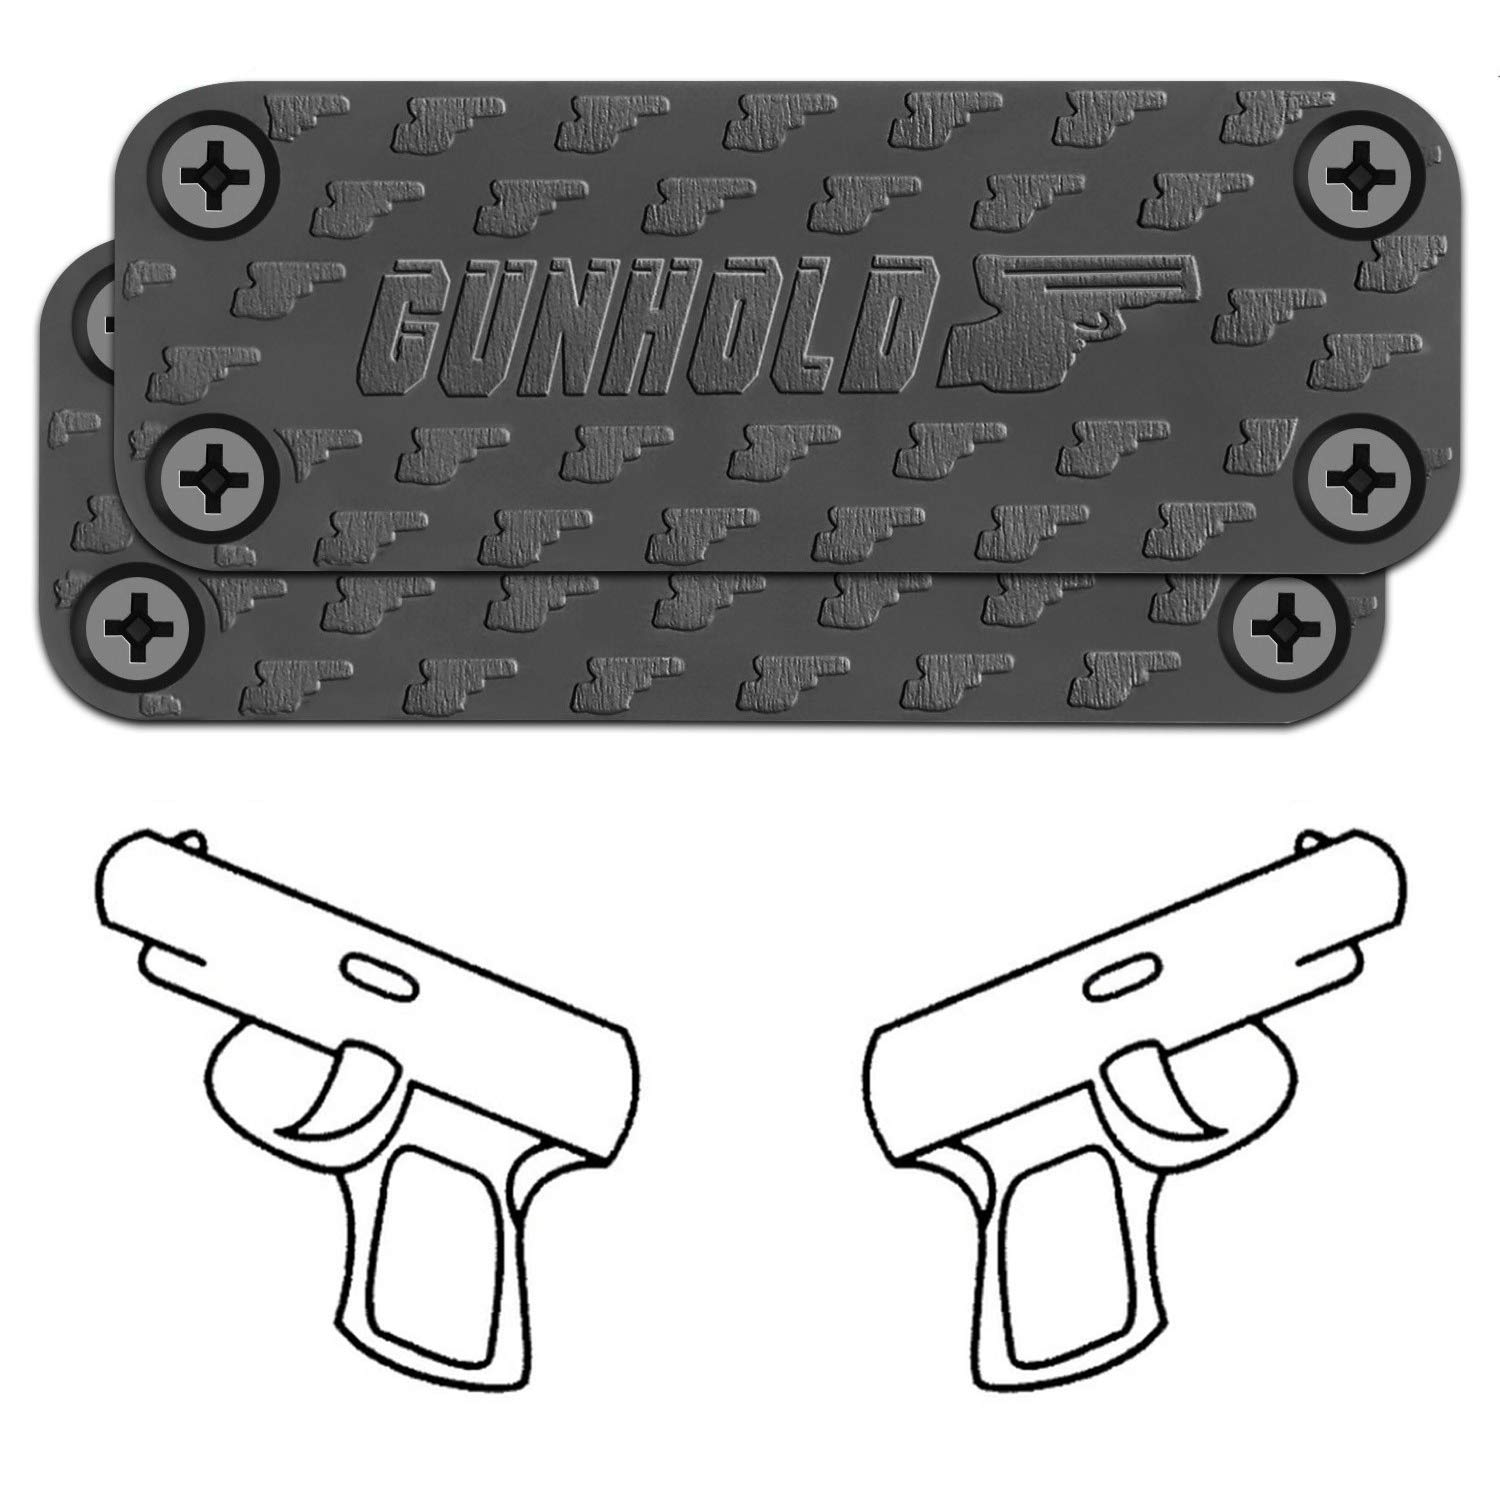 GUNHOLD Gun Magnet - Magnetic Gun Mount & Car Holster - HQ Rubber Coated 43 lbs Firearm Accessories. Install in Your car, Truck, Wall, Vault, Bedside, Doorway, Desk, Safe